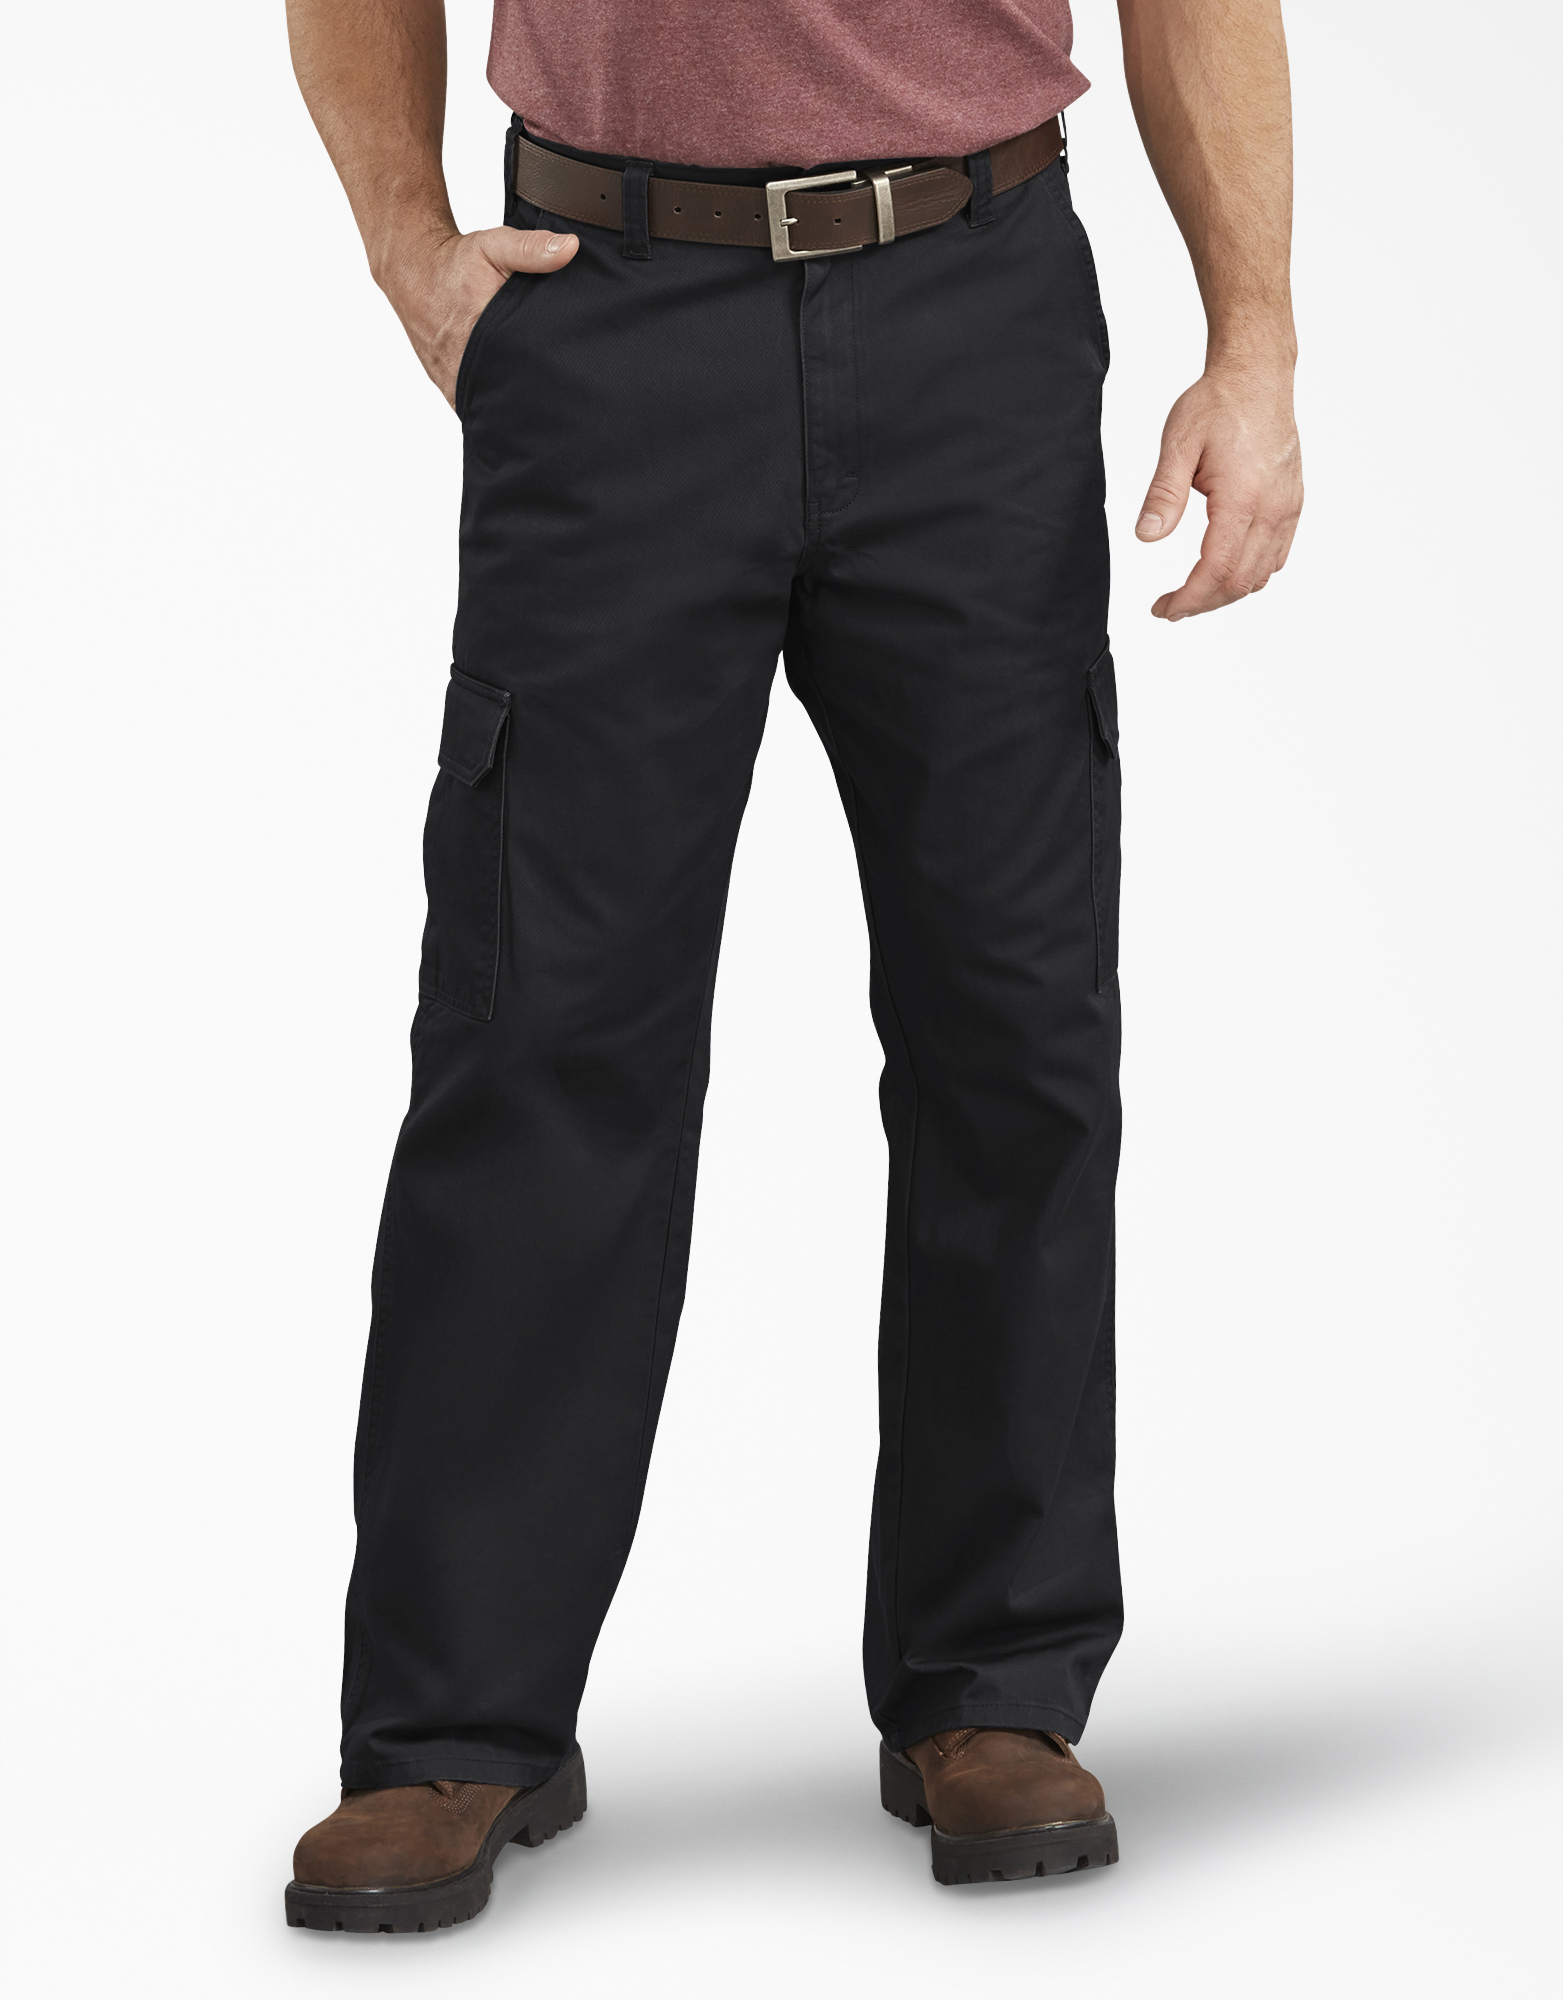 Loose Fit Straight Leg Cargo Pants - Rinsed Black (RBK)